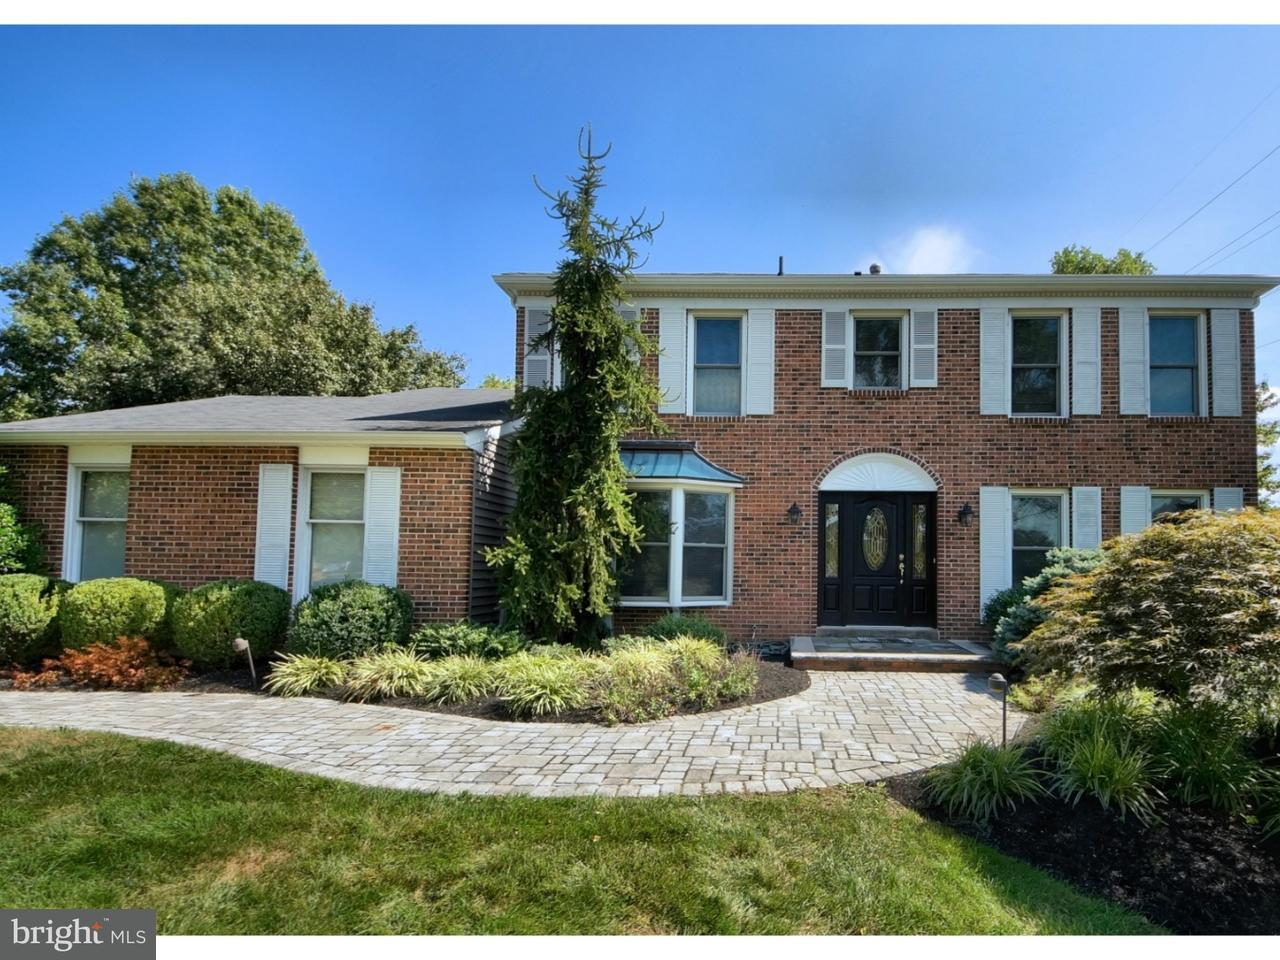 Single Family Home for Sale at 26 MELVINA Drive Lawrence, New Jersey 08648 United StatesMunicipality: Lawrence Township